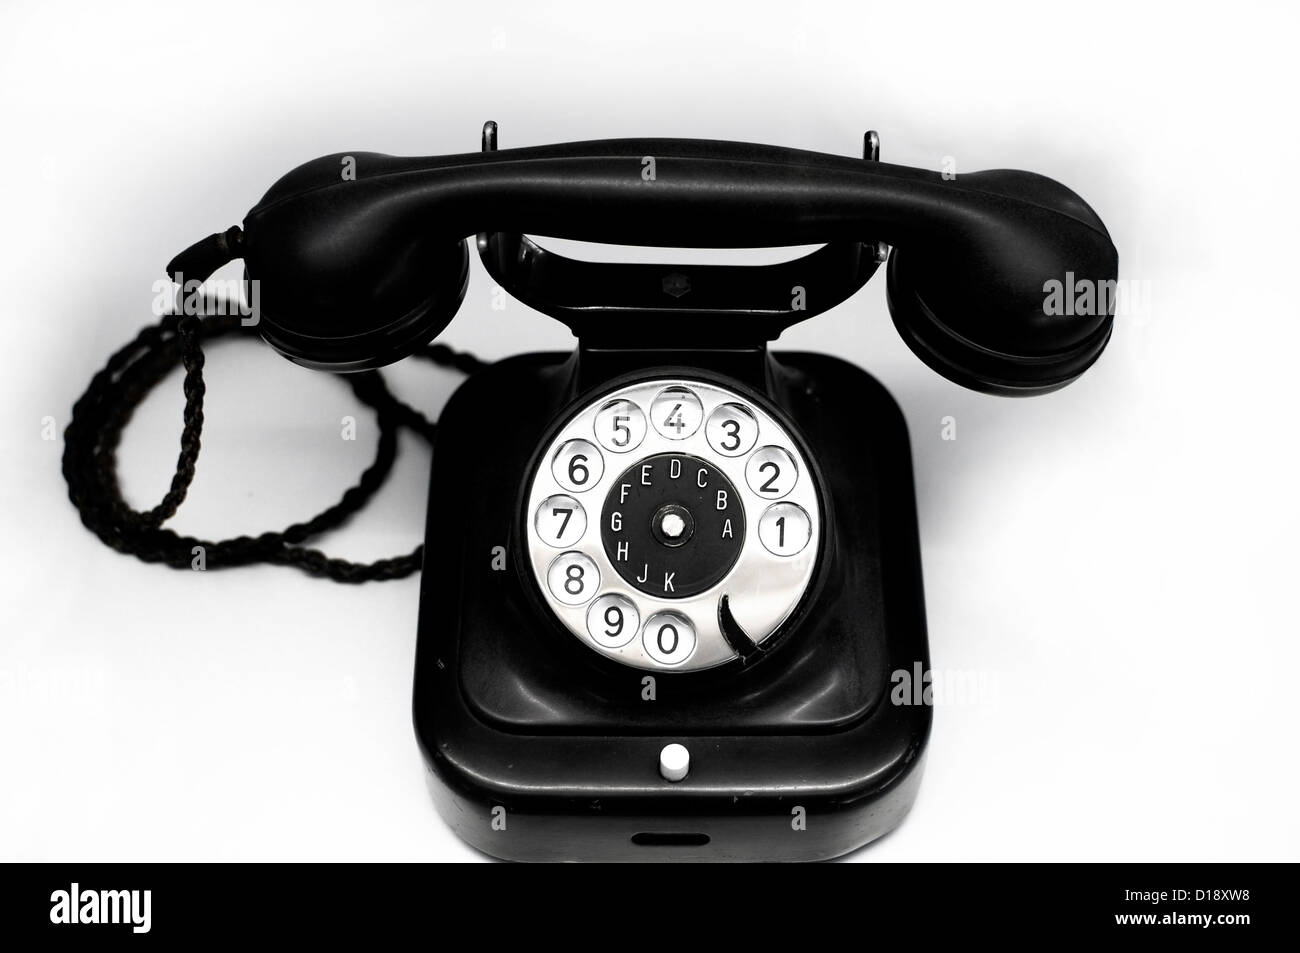 Old black Telephone with rotary dial, ca. 1950 - Stock Image